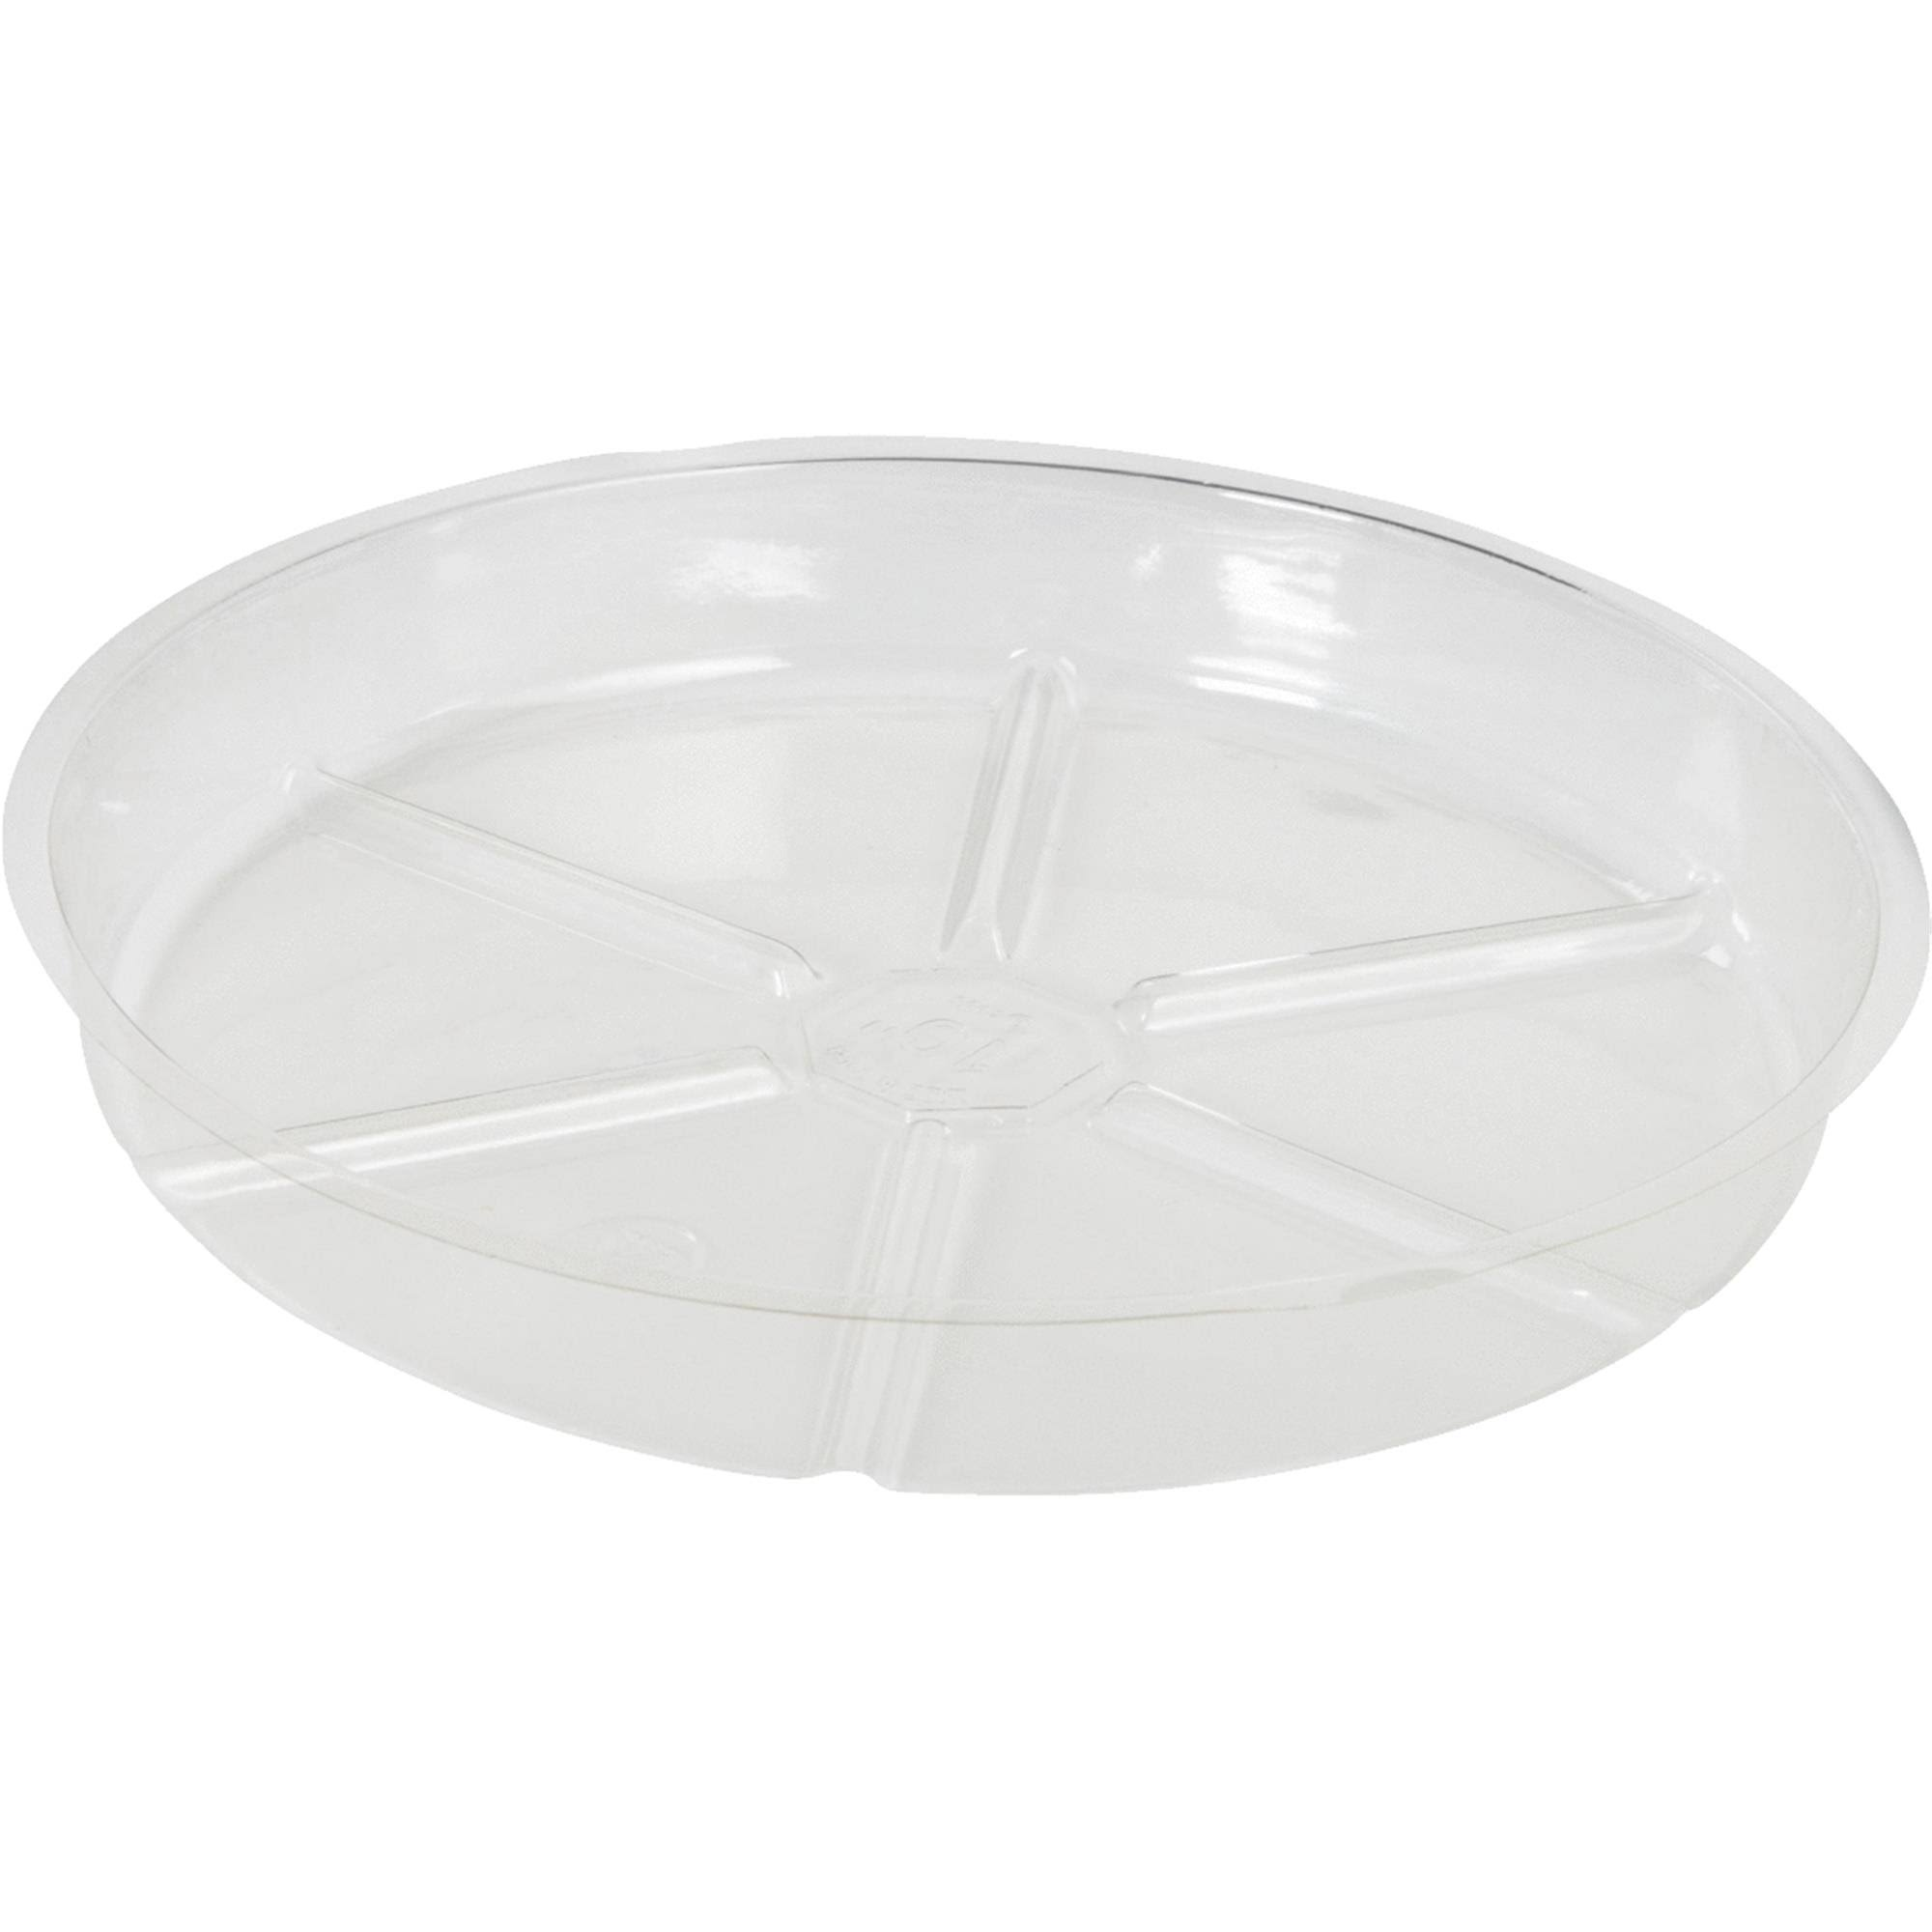 Do It Best Global Sourcing Vinyl Saucer - Clear